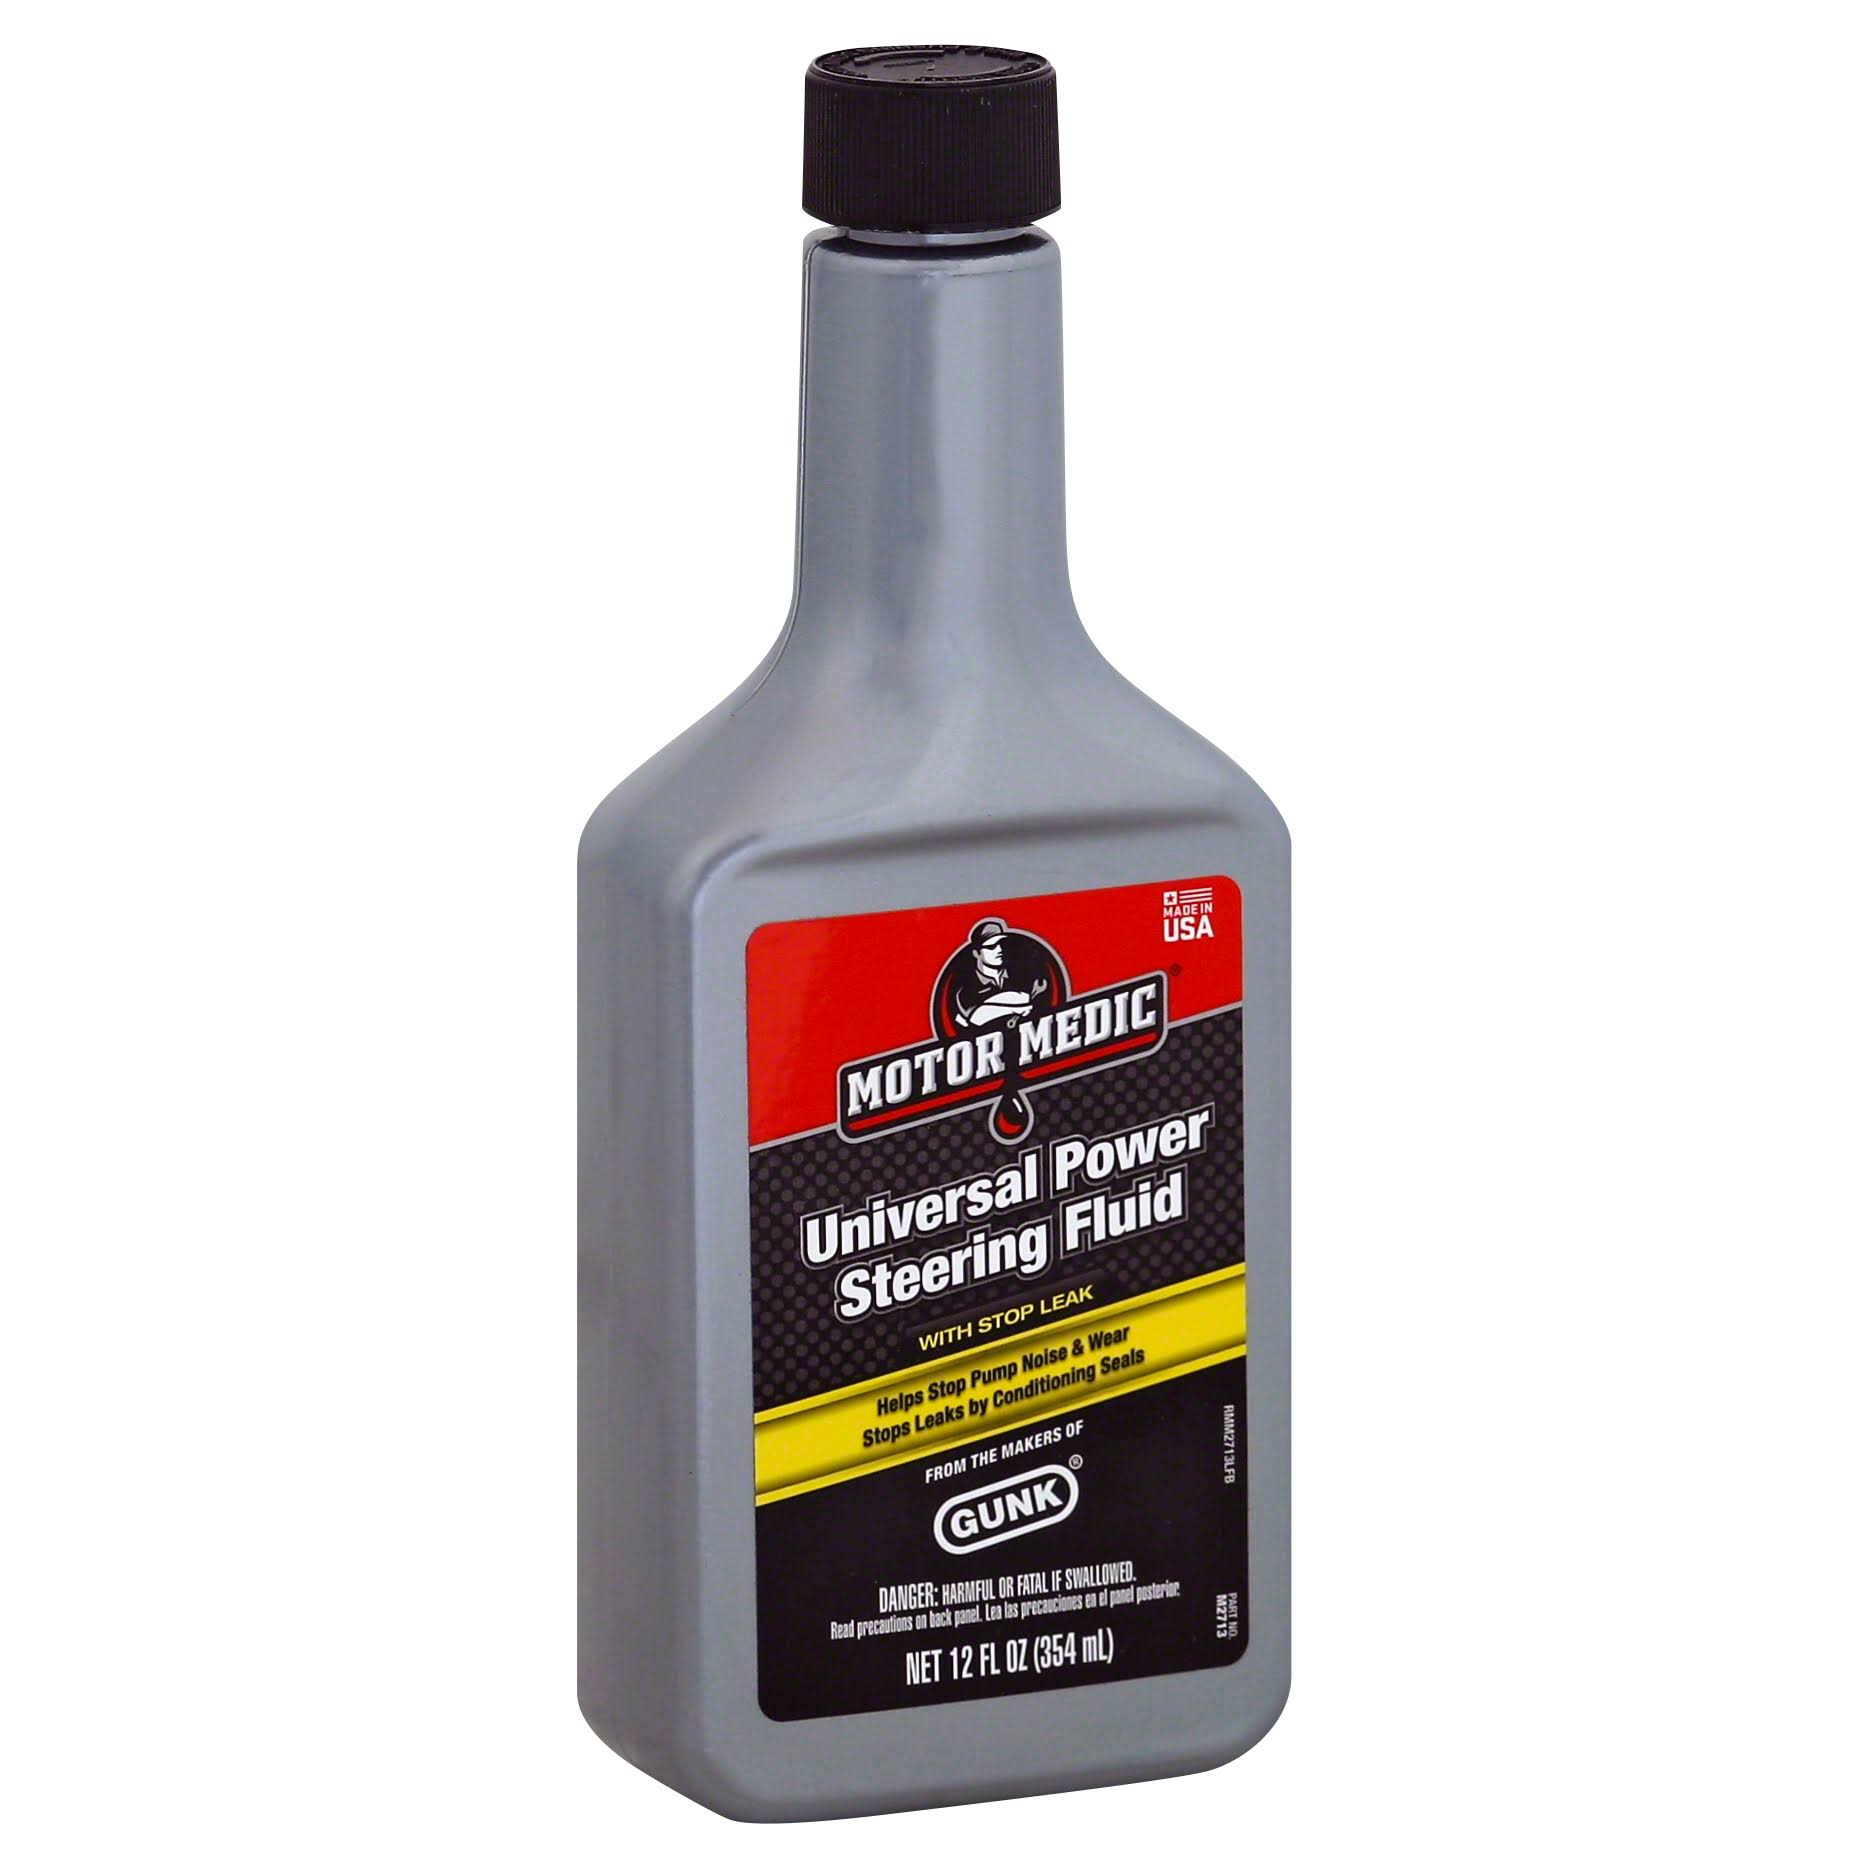 Gunk M2713 Power Steering Fluid